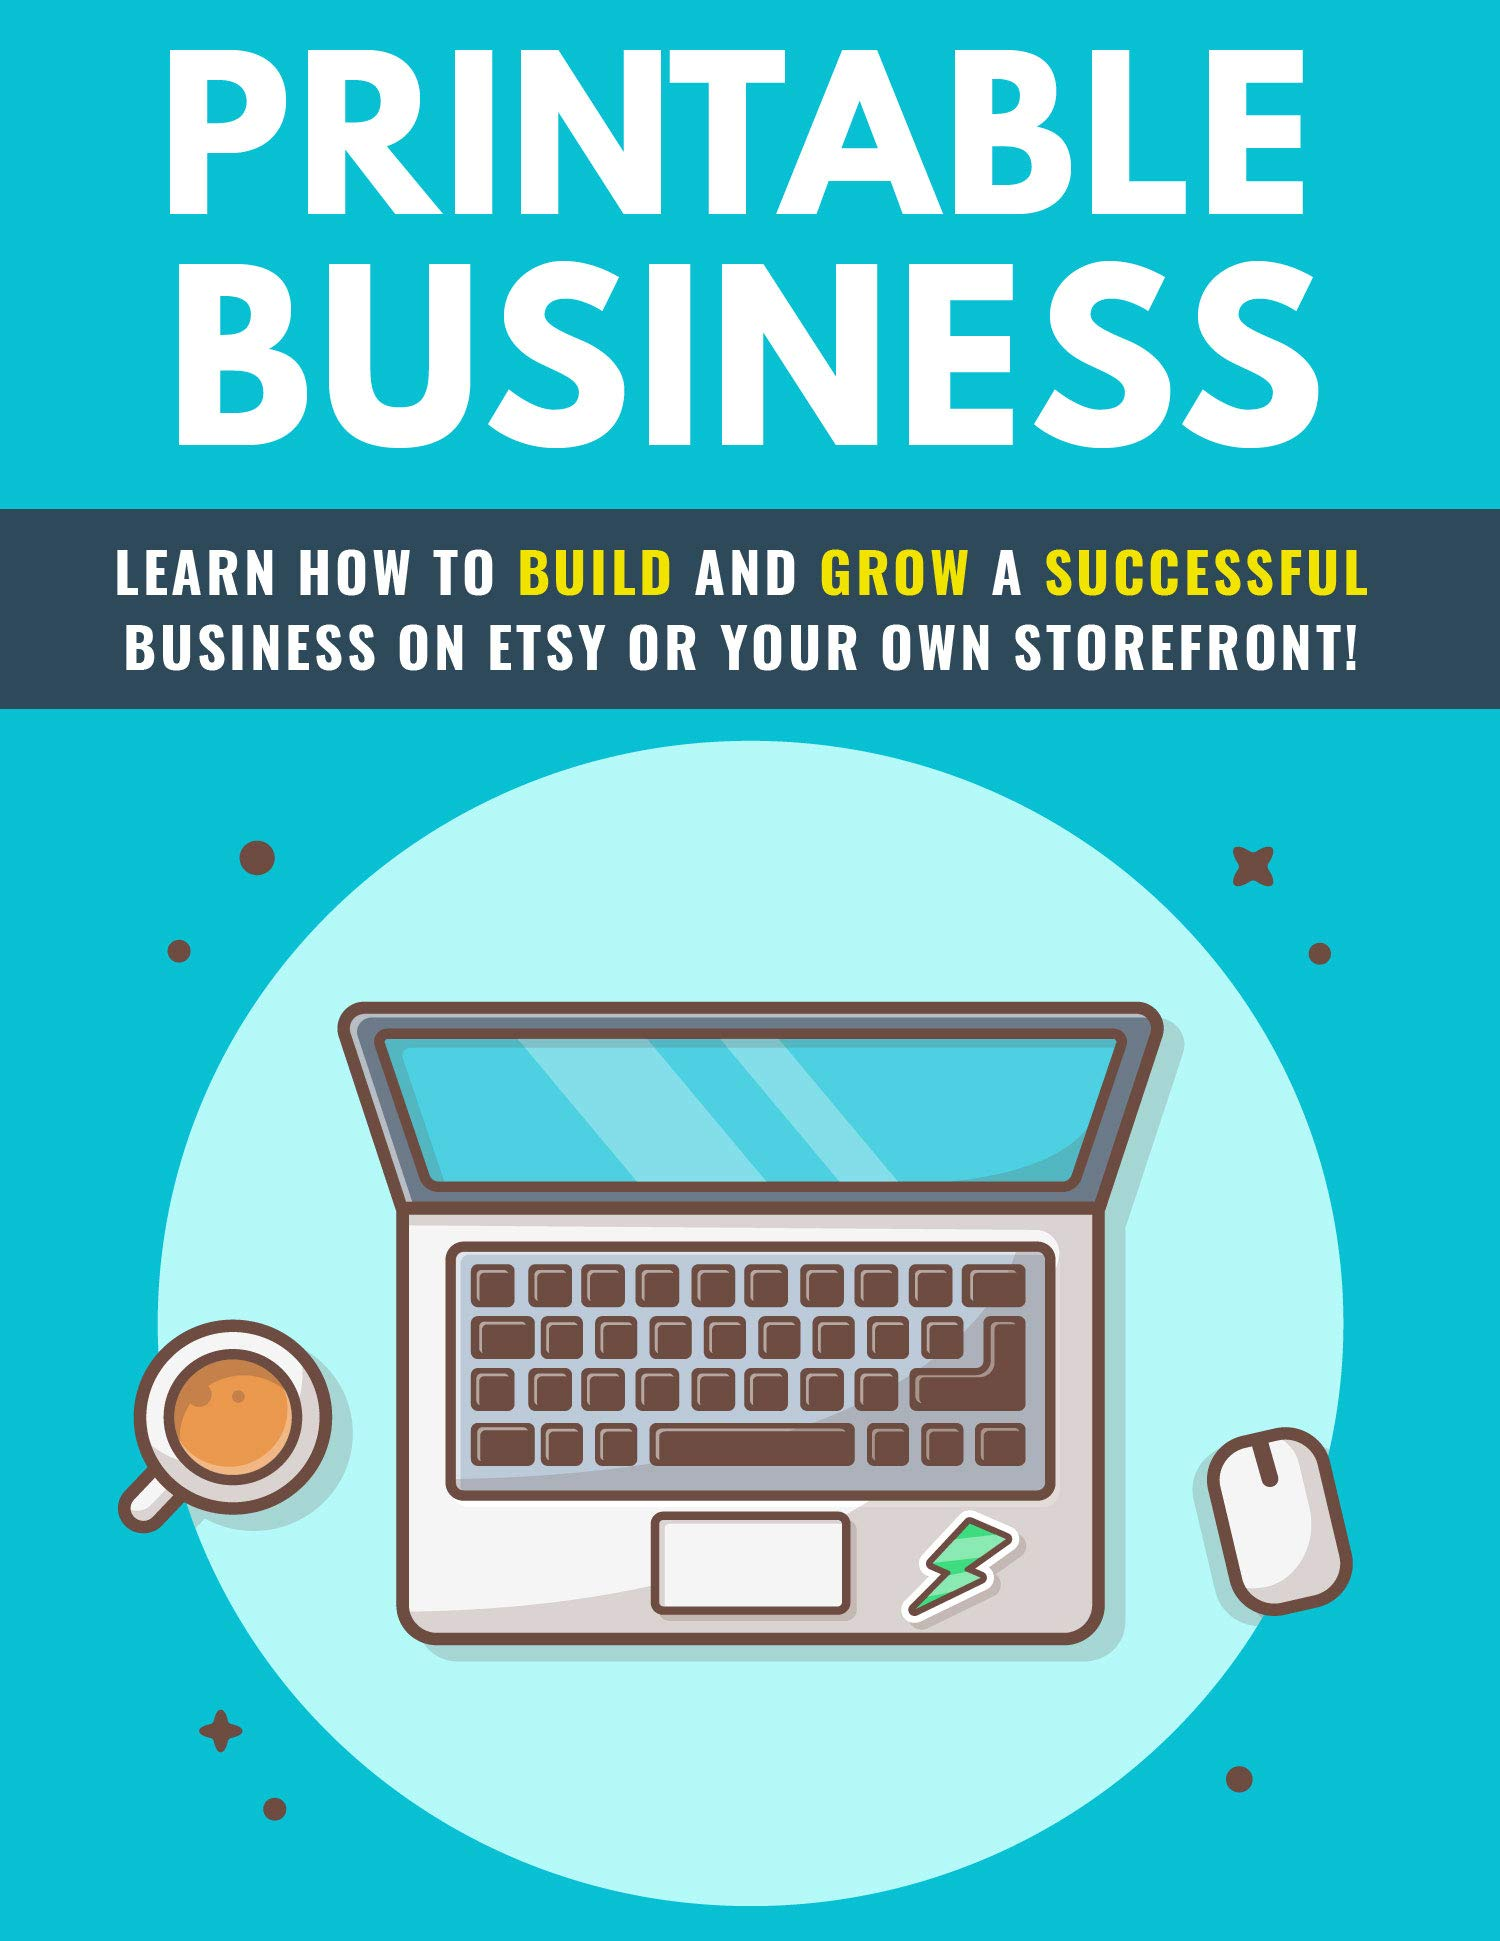 Printable Business: Launching Your Shop